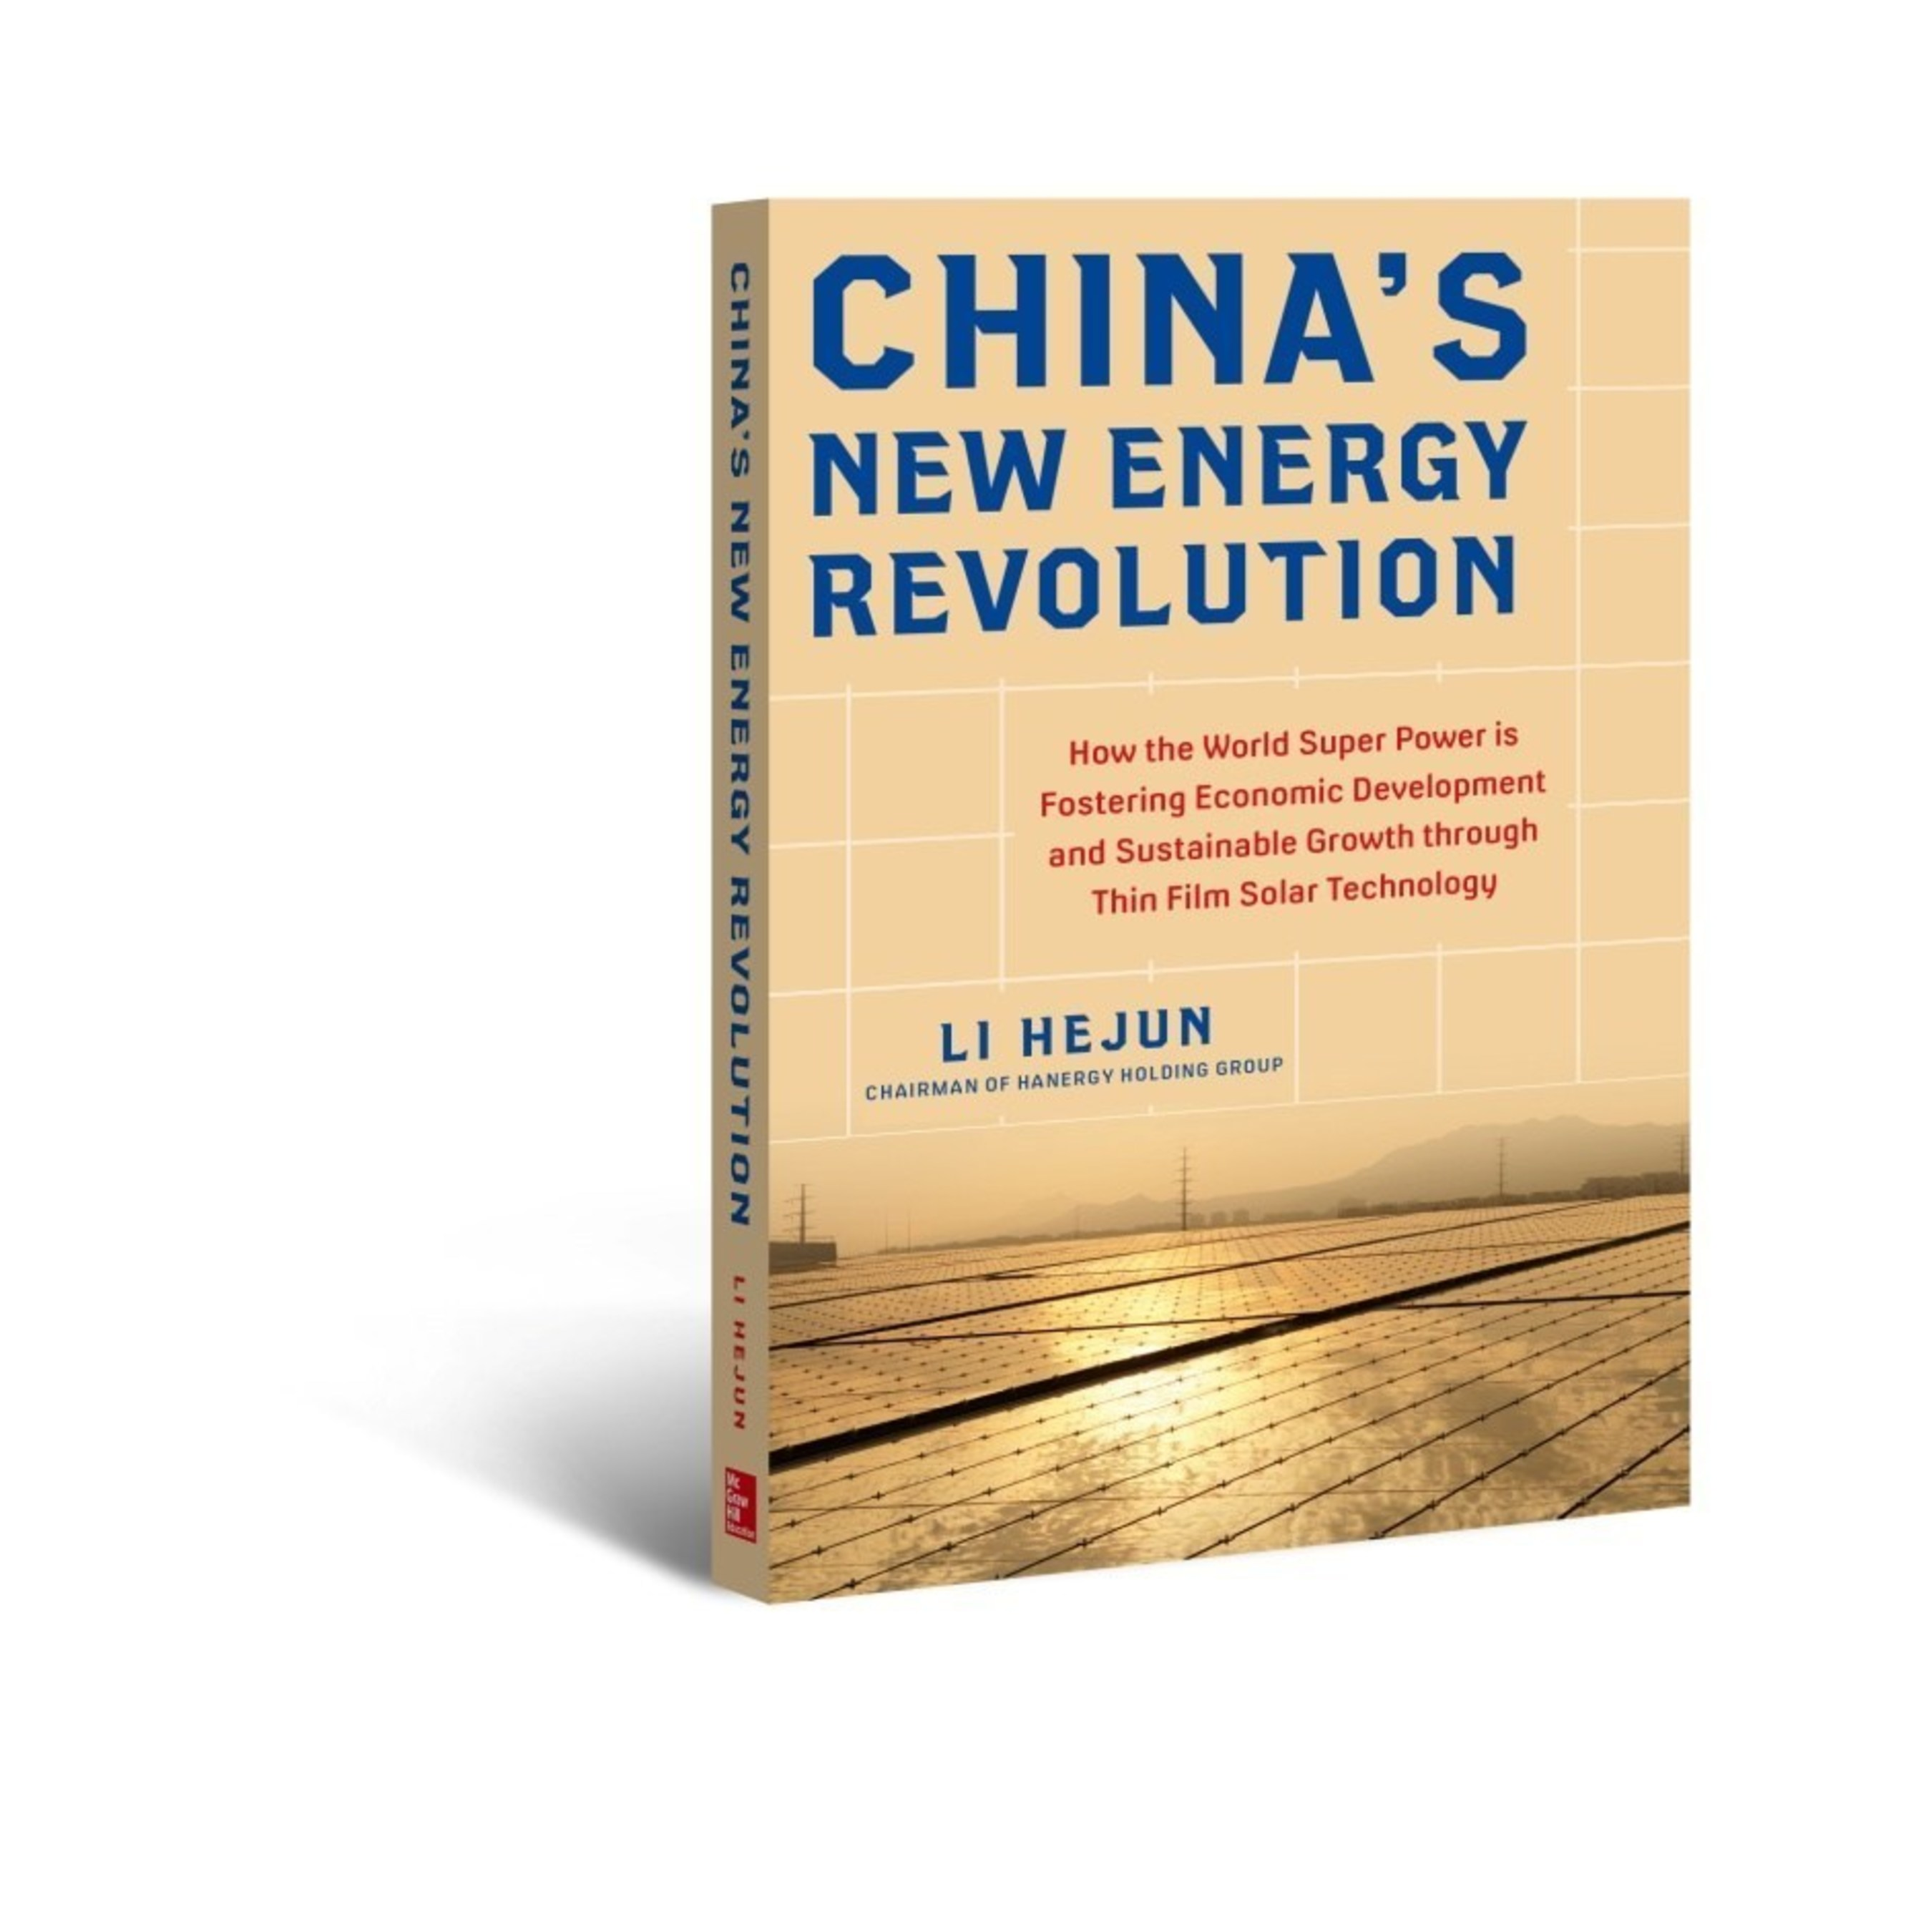 The English edition of China's New Energy Revolution by renewable energy advocate and Hanergy Chairman Li ...